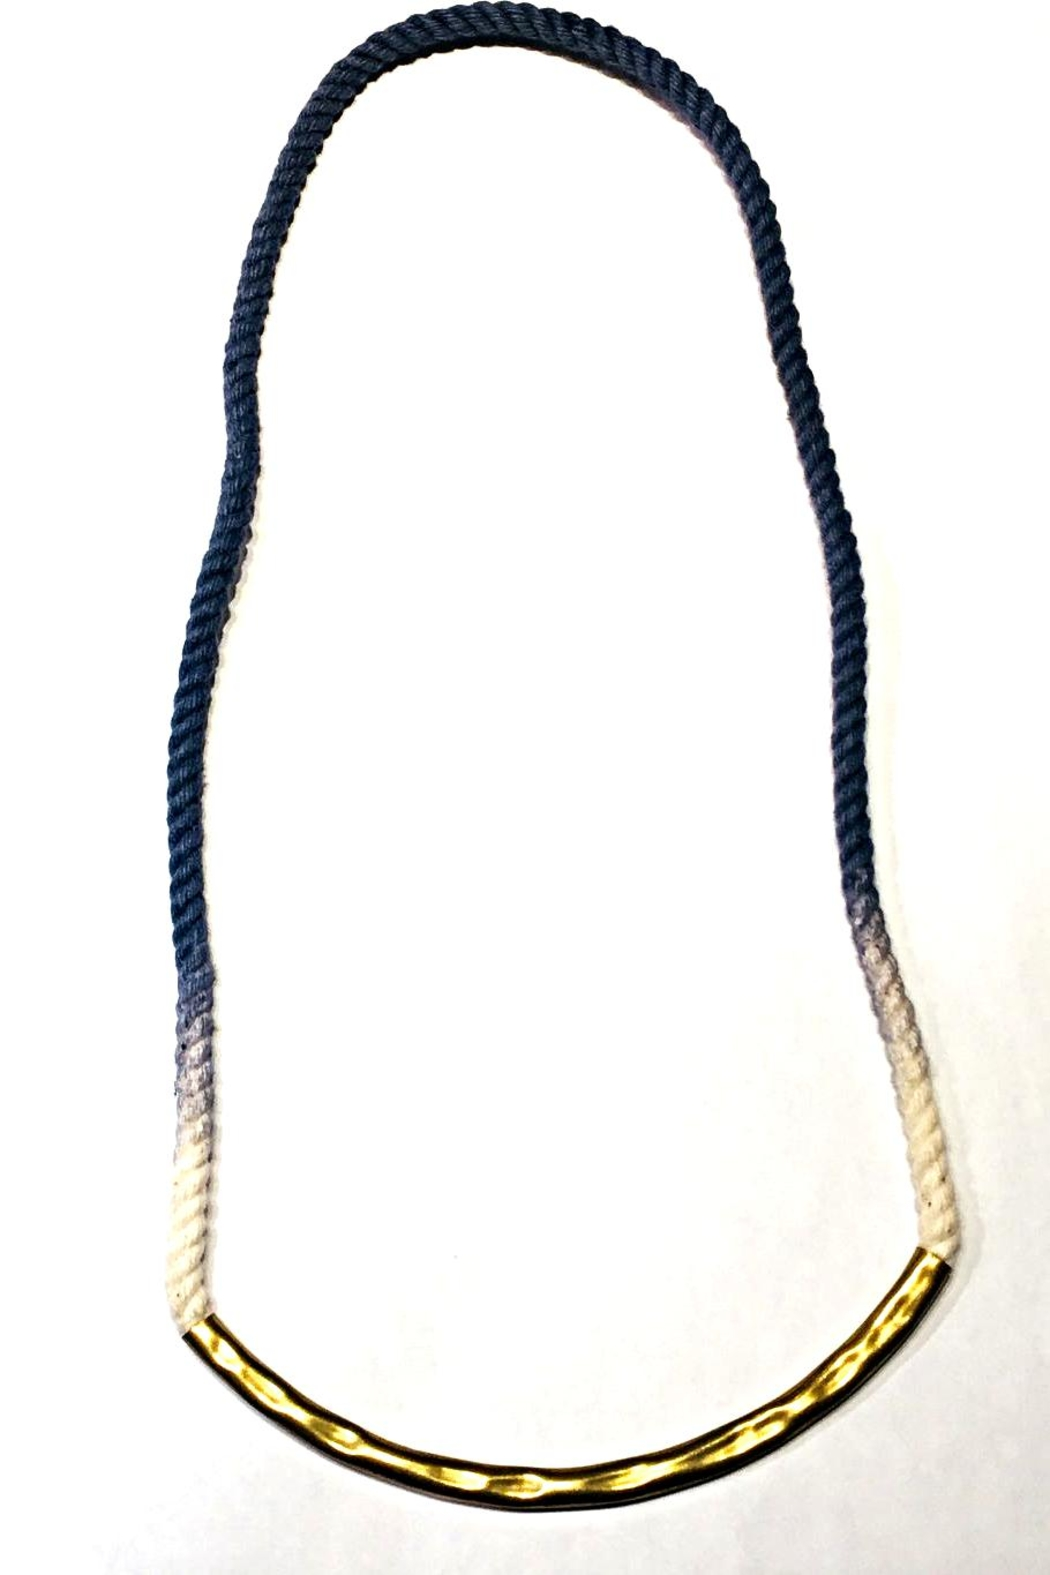 Amano Trading Mariner's Rope Necklace - Main Image